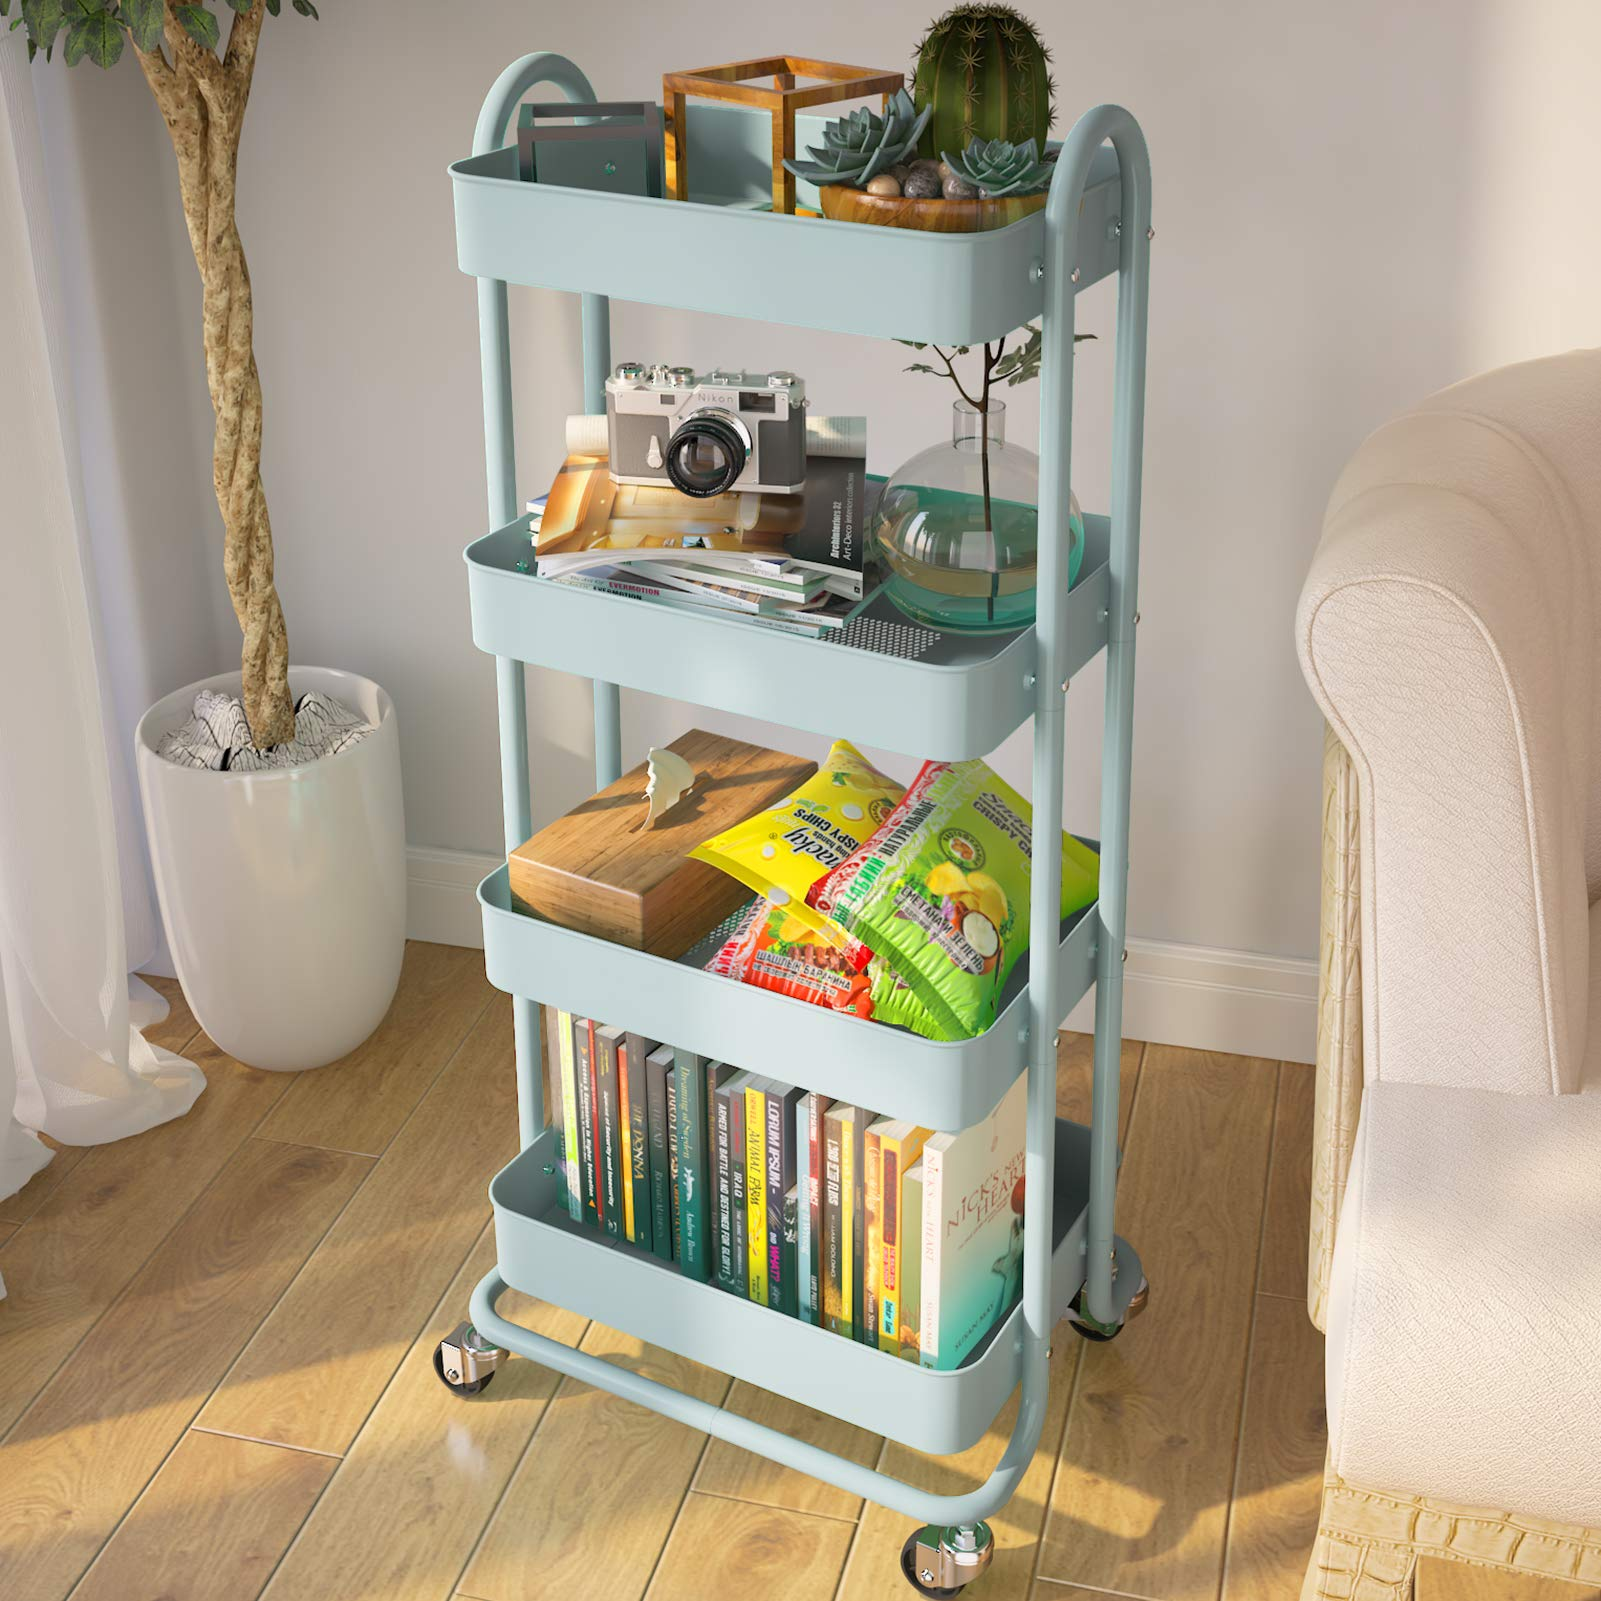 SNTD 4-Tier Rolling Utility Cart with Wheels Storage Shelves Trolley Service Cart for Bathroom Kitchen Office Green